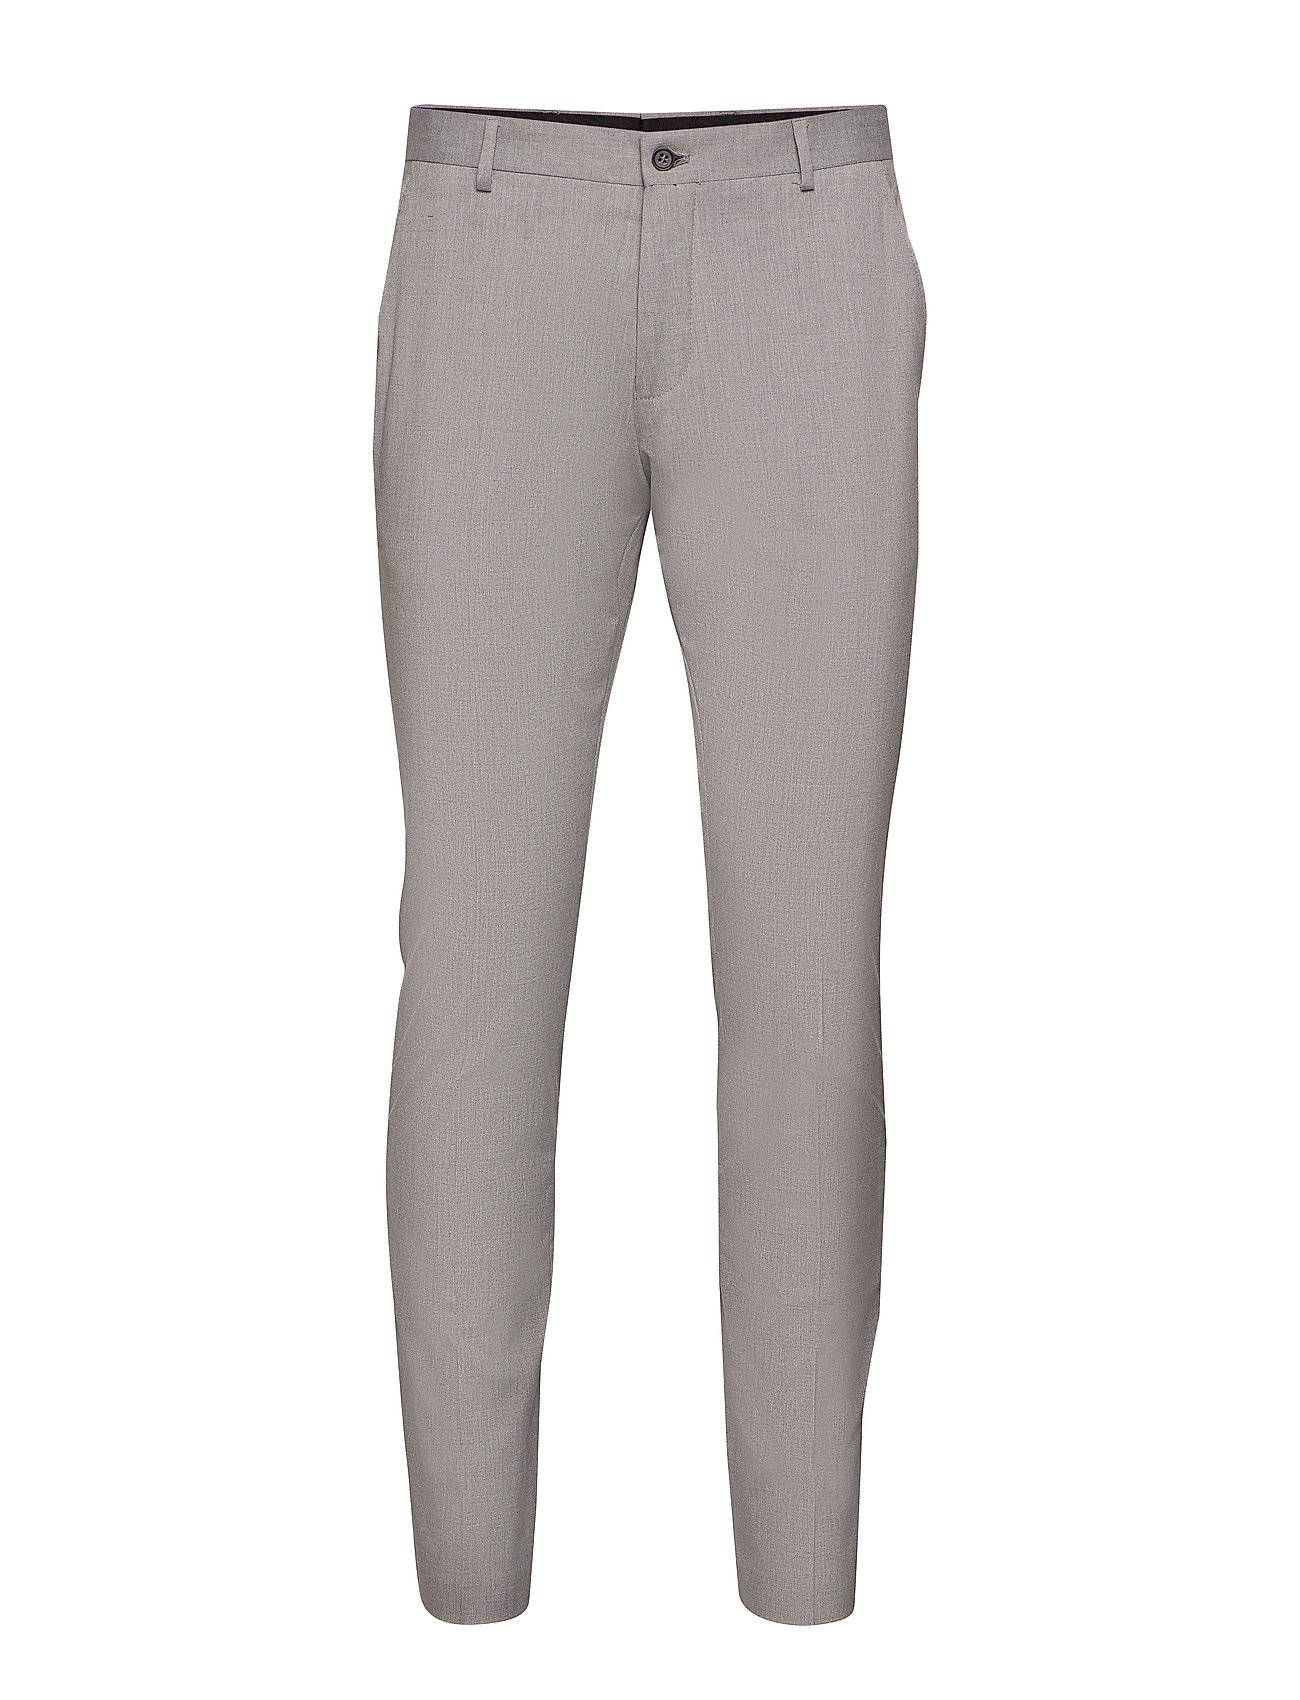 Selected Homme Slhslim-Mylologan Light Grey Trs B Noos Puvun Housut Suorat Housut Harmaa Selected Homme